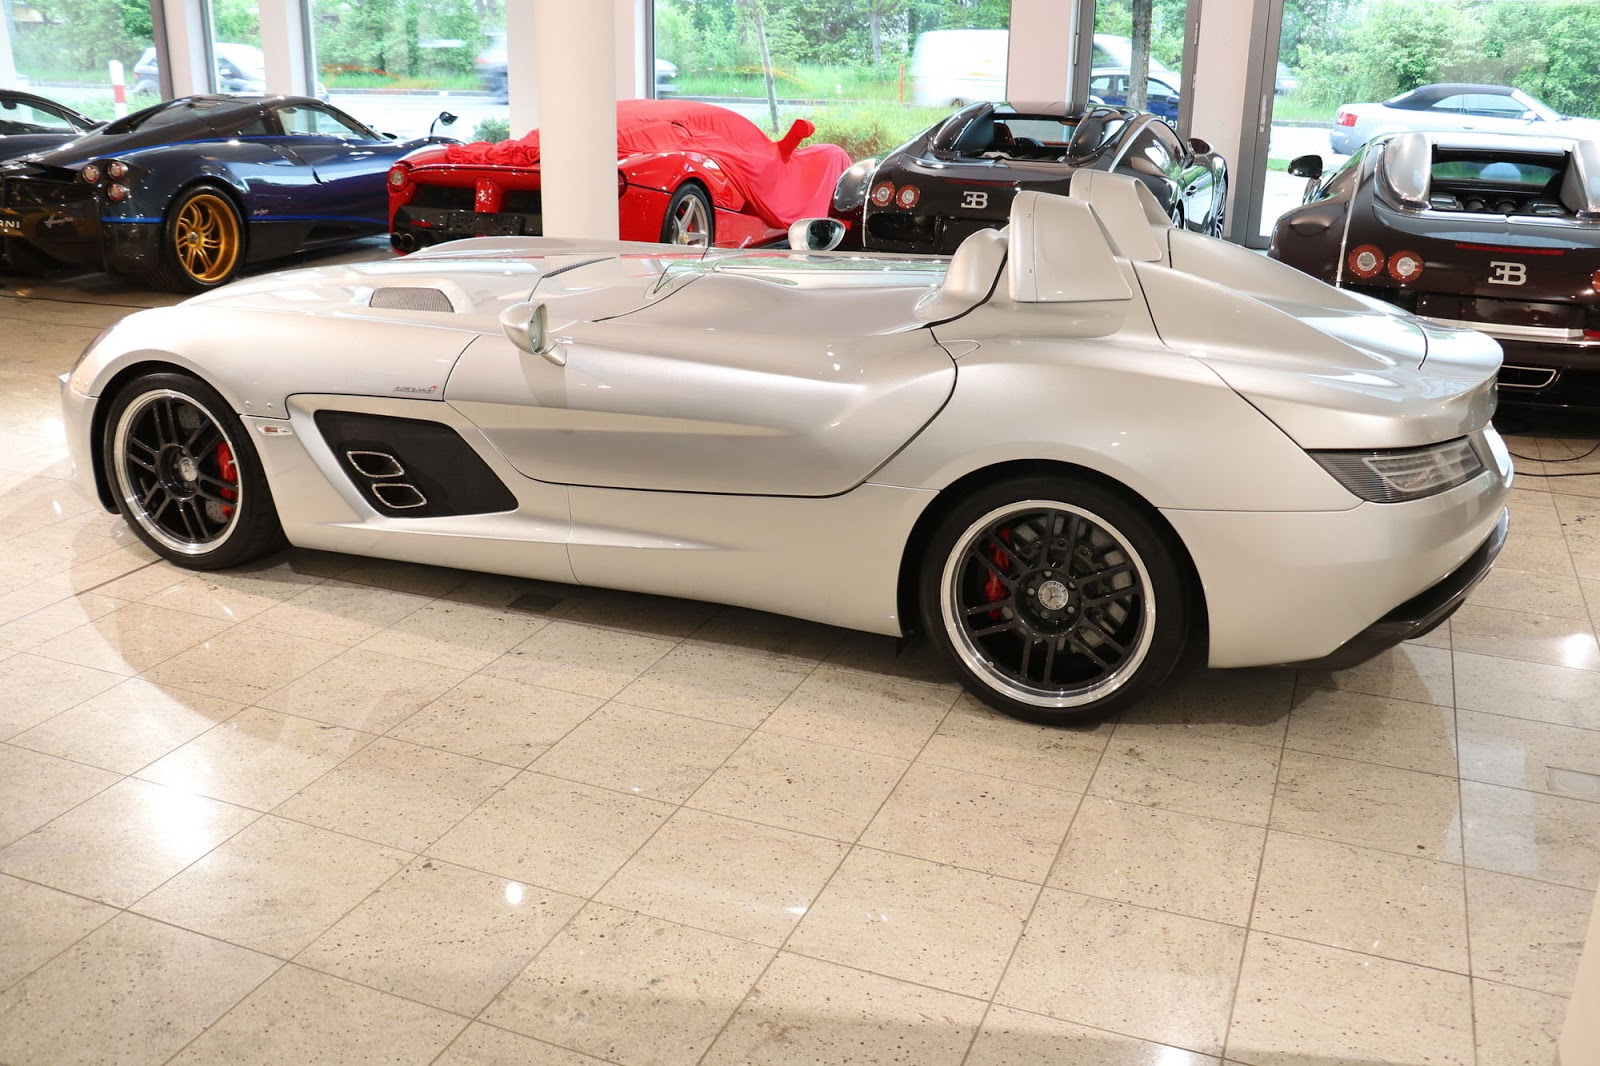 Mercedes Benz Slr Stirling Moss For Sale In Germany